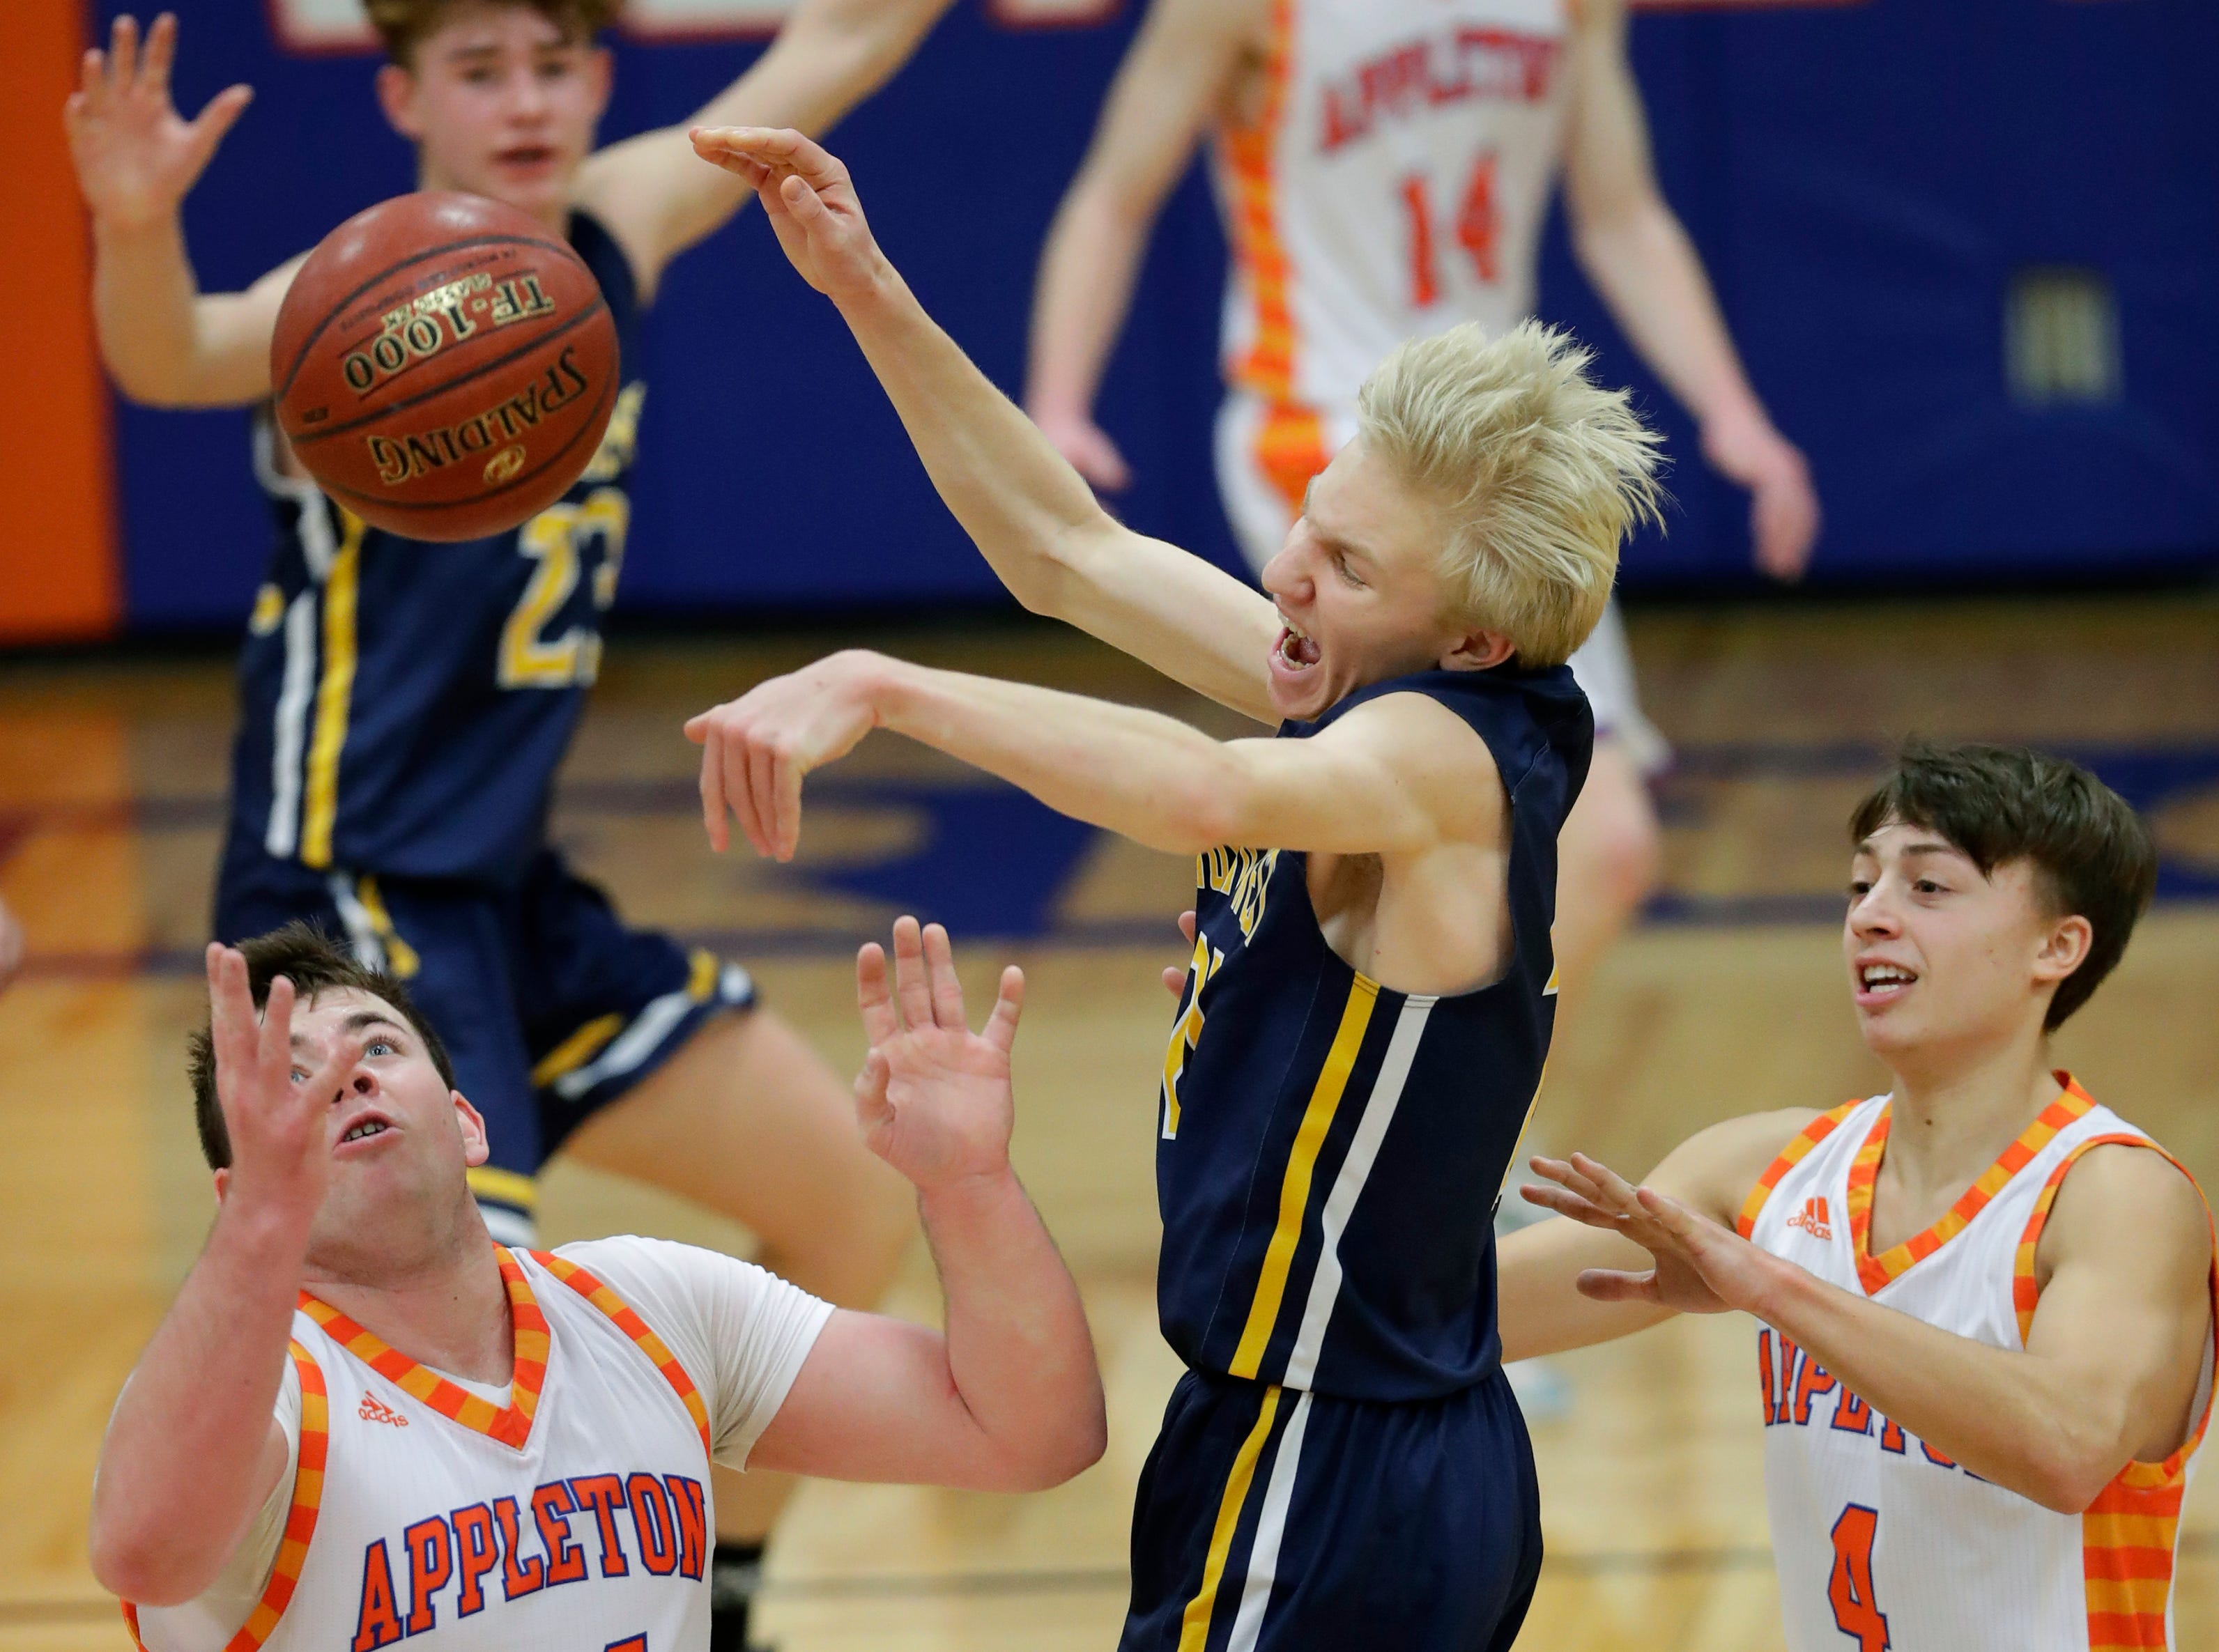 Appleton West  High School's Tyler Tetzke (44) and Eli Vogel (4) pressure Wausau West High School's Ryan Hartman (21) during their boys basketball game Friday, December 28, 2018, in Appleton, Wis. 